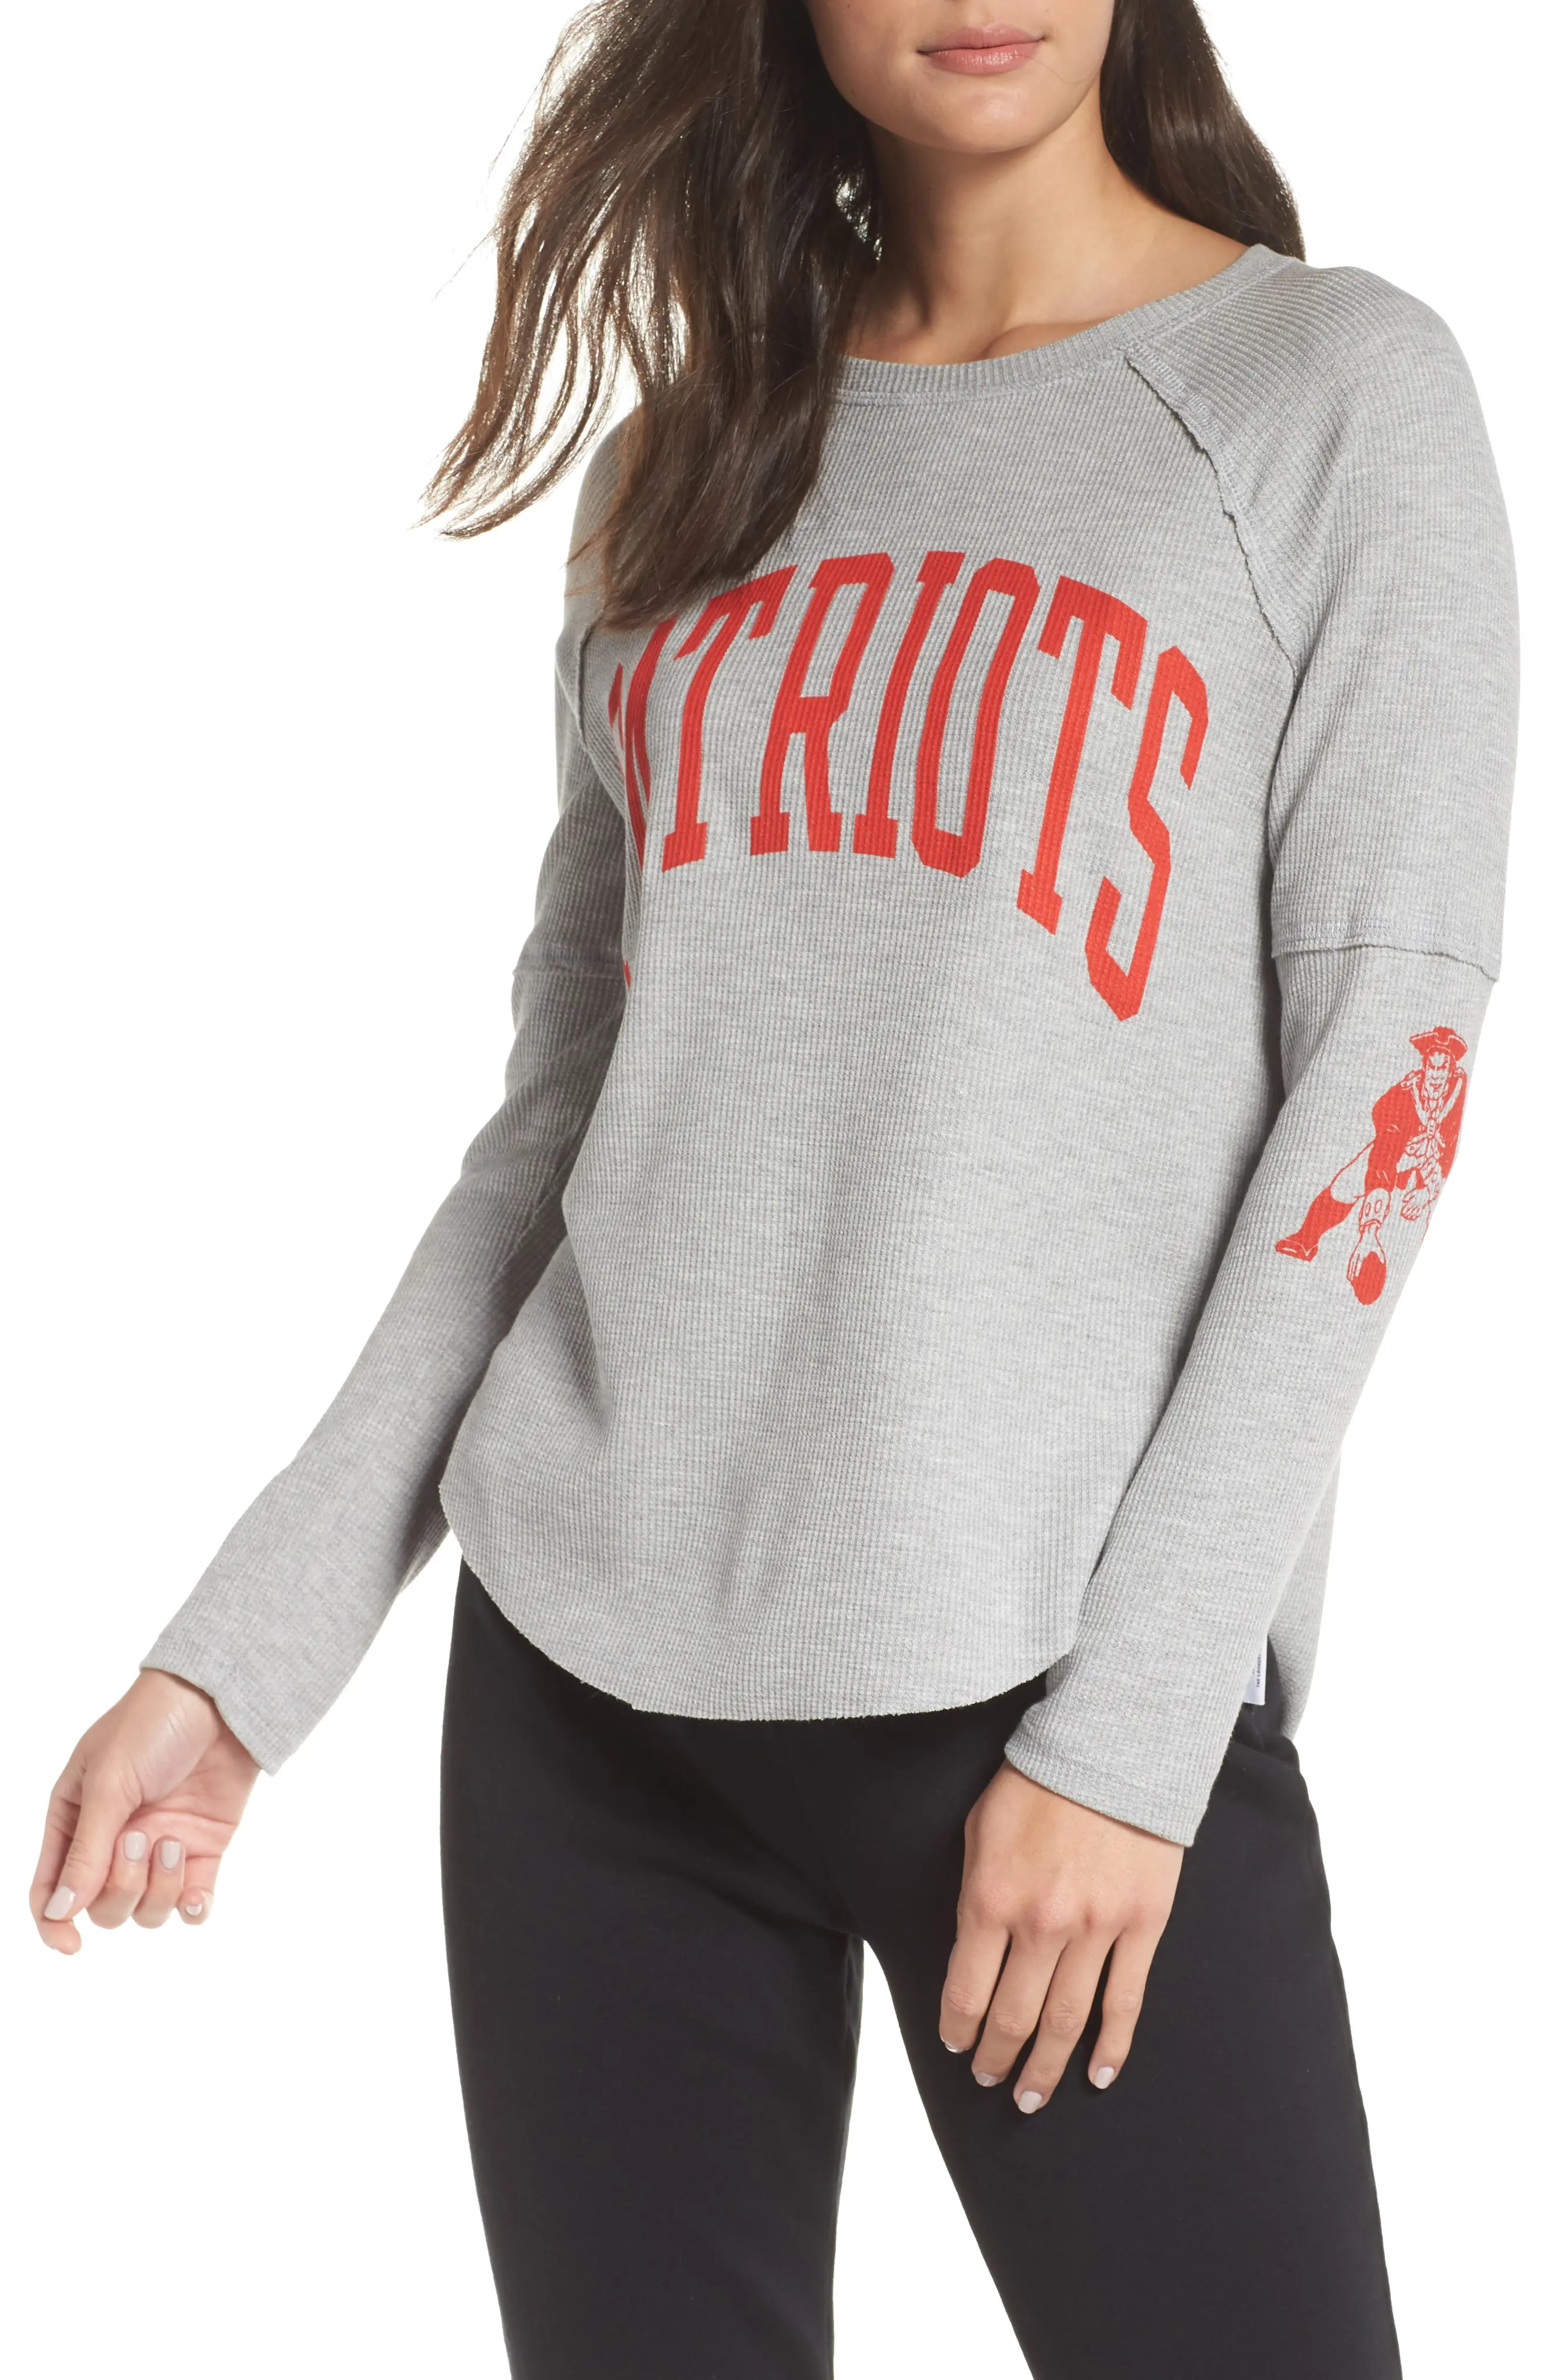 Junk food nfl thermal tee also women   tees clothing nordstrom rh shoprdstrom